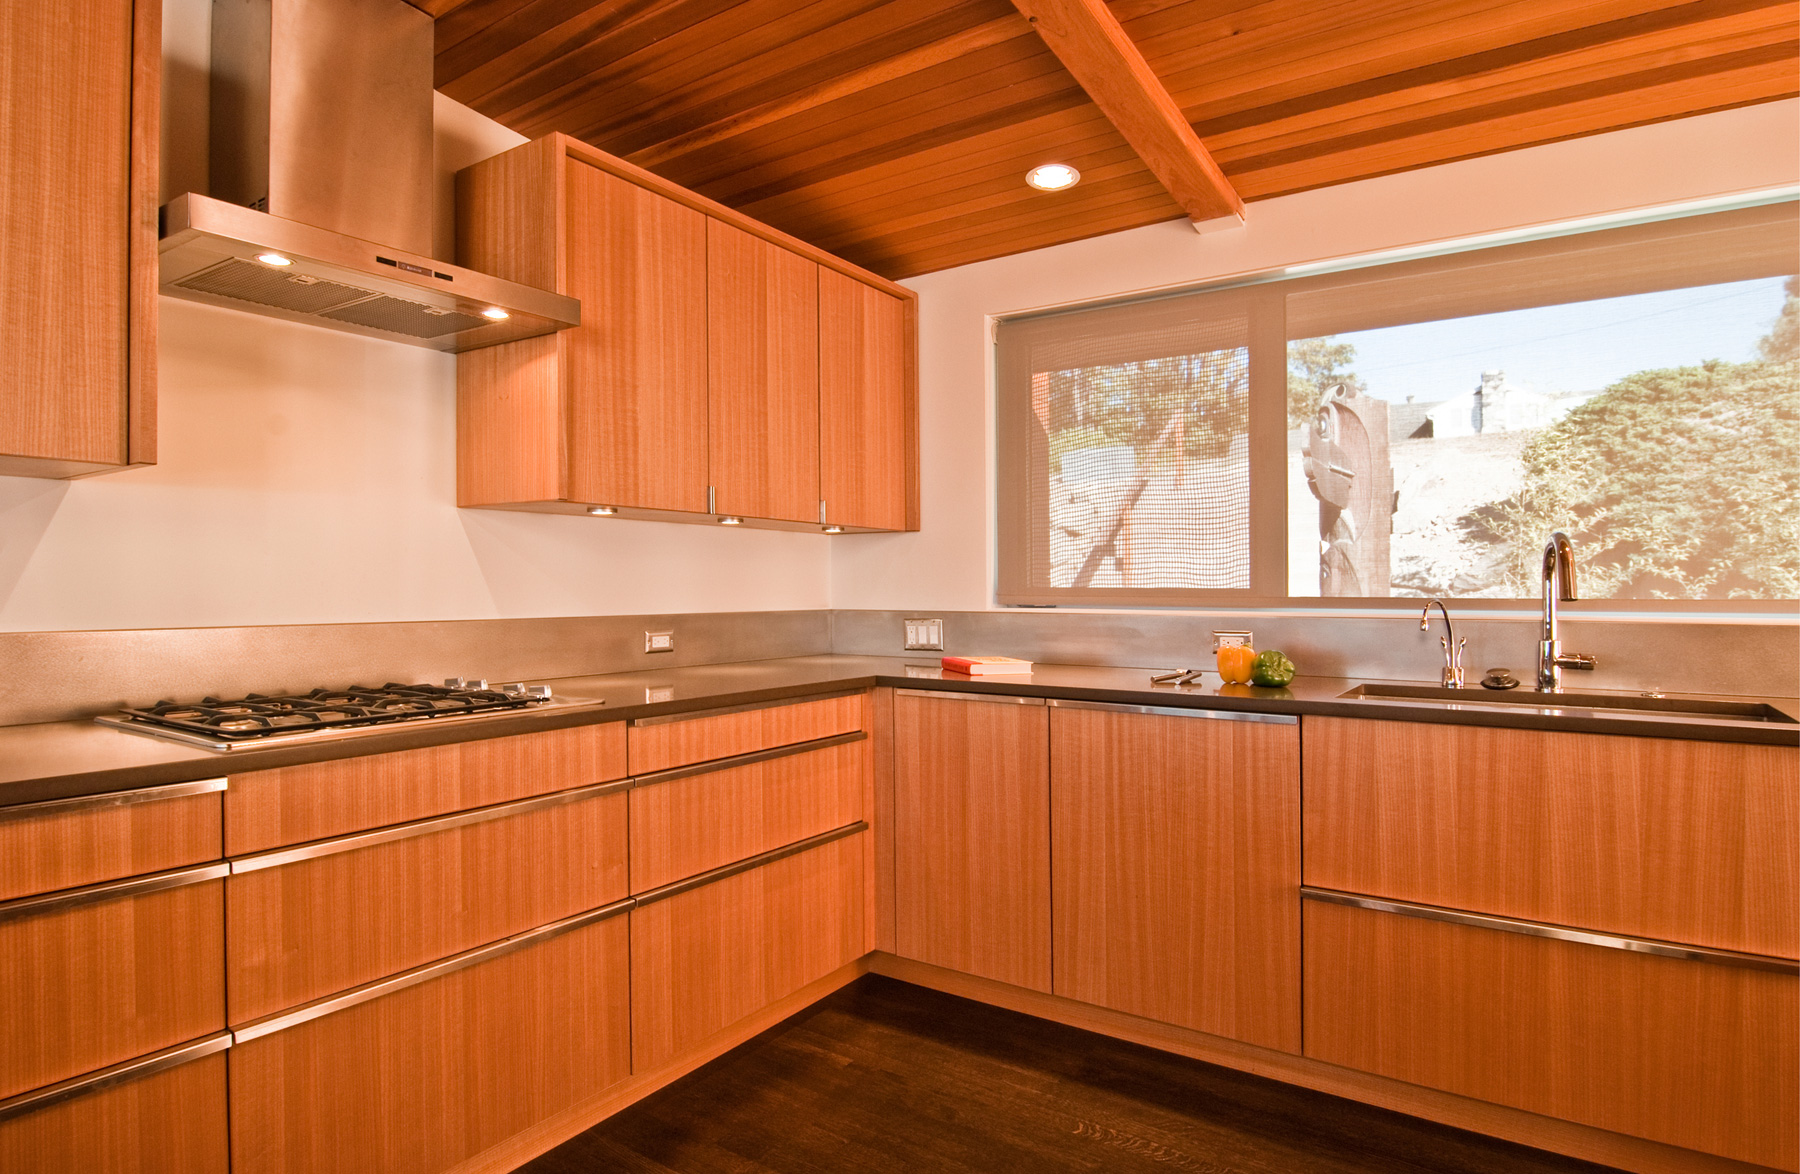 Mid century modern kitchen cabinets recommendation homesfeed for Modern kitchen furniture